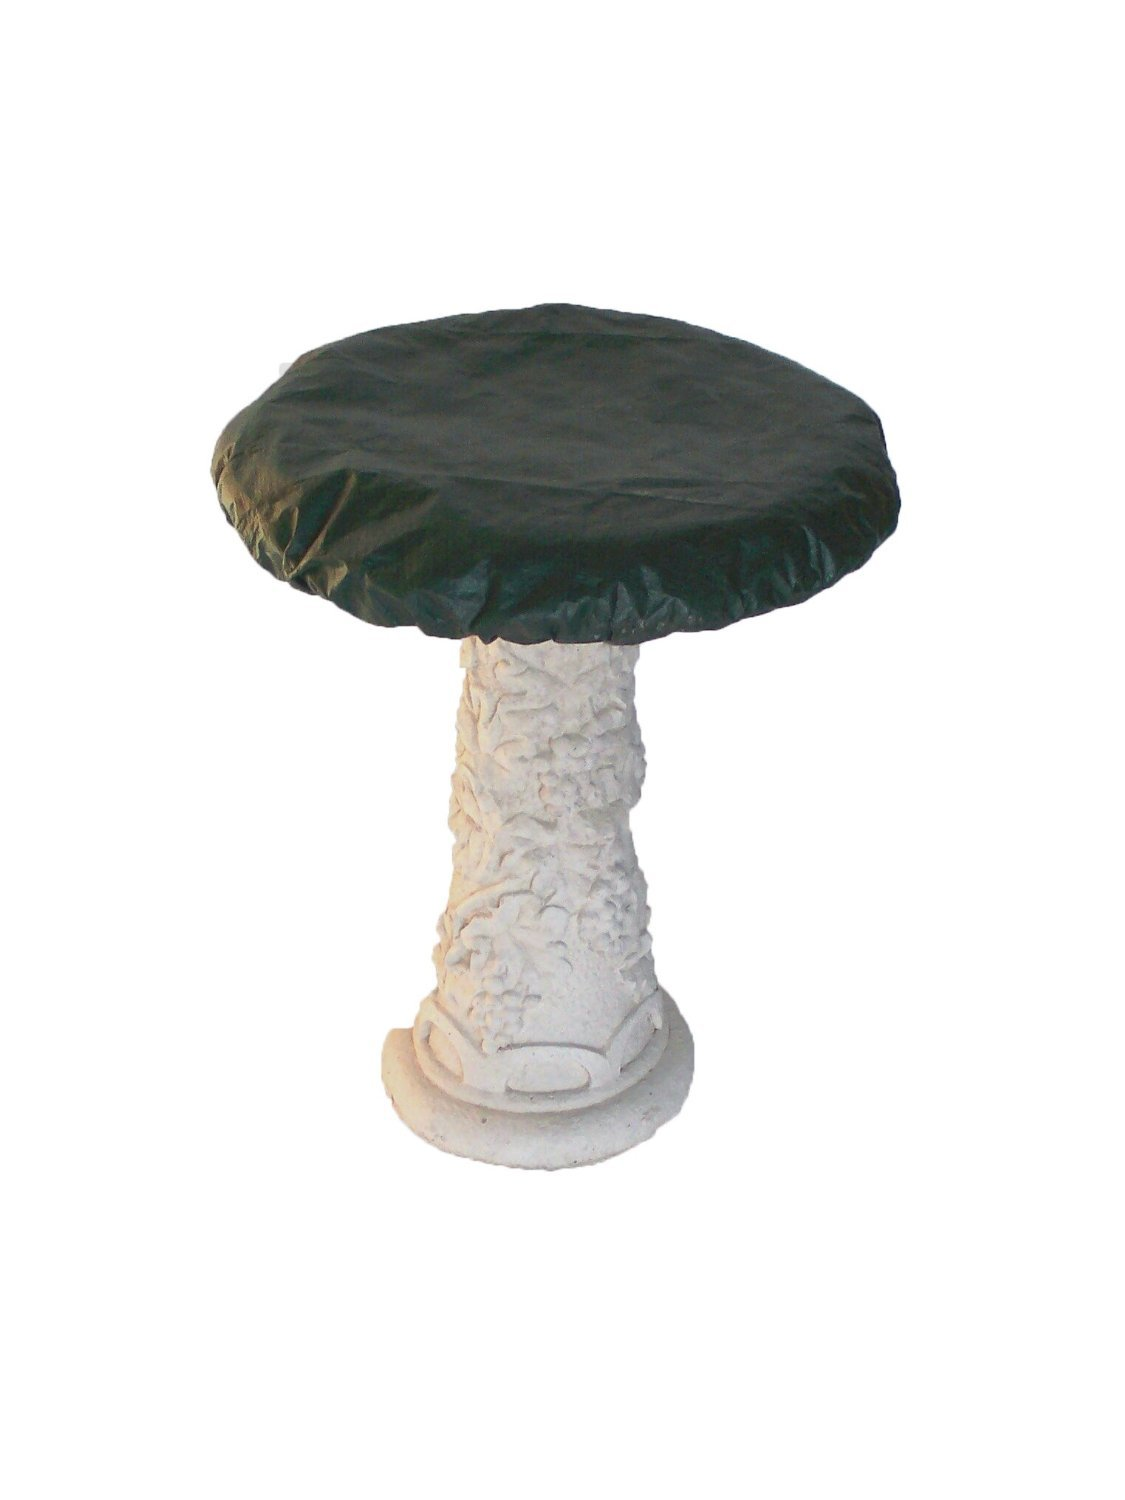 Bosmere Waterproof Bird Bath Cover for 18 to 21 Diameter Bowl, Green C820